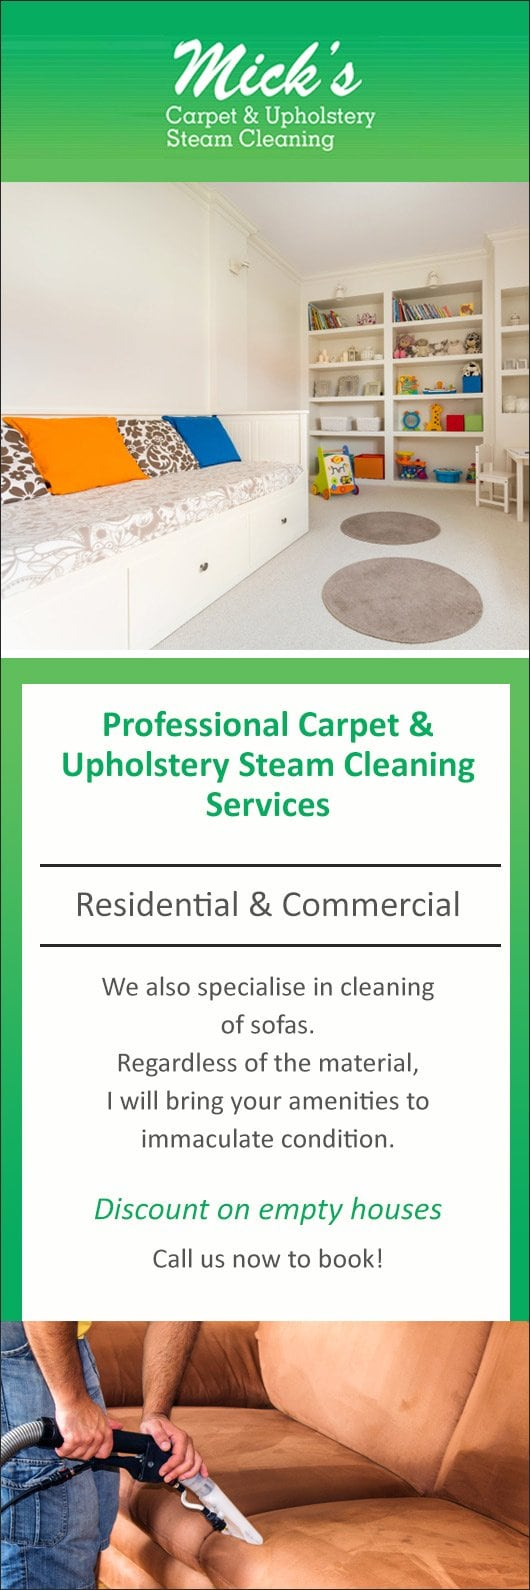 Mick s carpet upholstery steam cleaning promotion